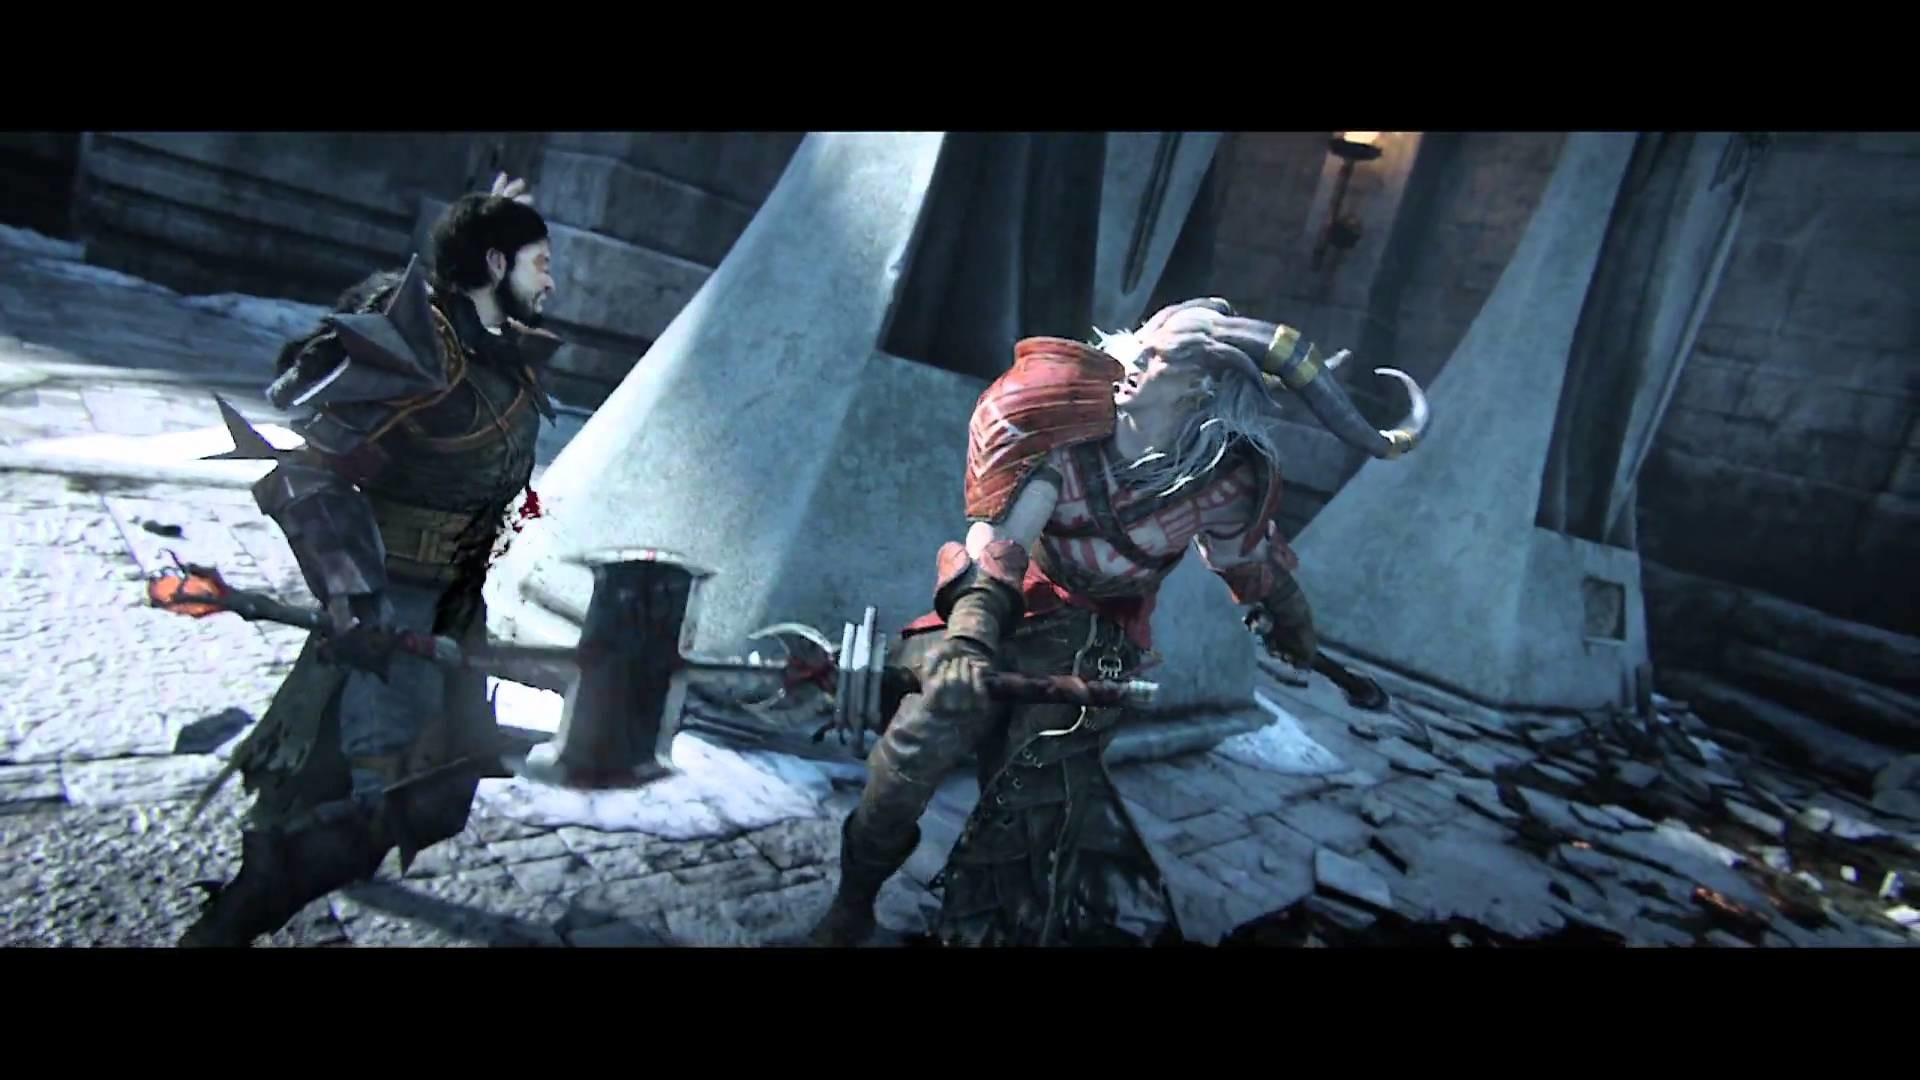 1920x1080 Dragon Age II: Destiny Trailer Extended Director's Cut Deutsch - YouTube